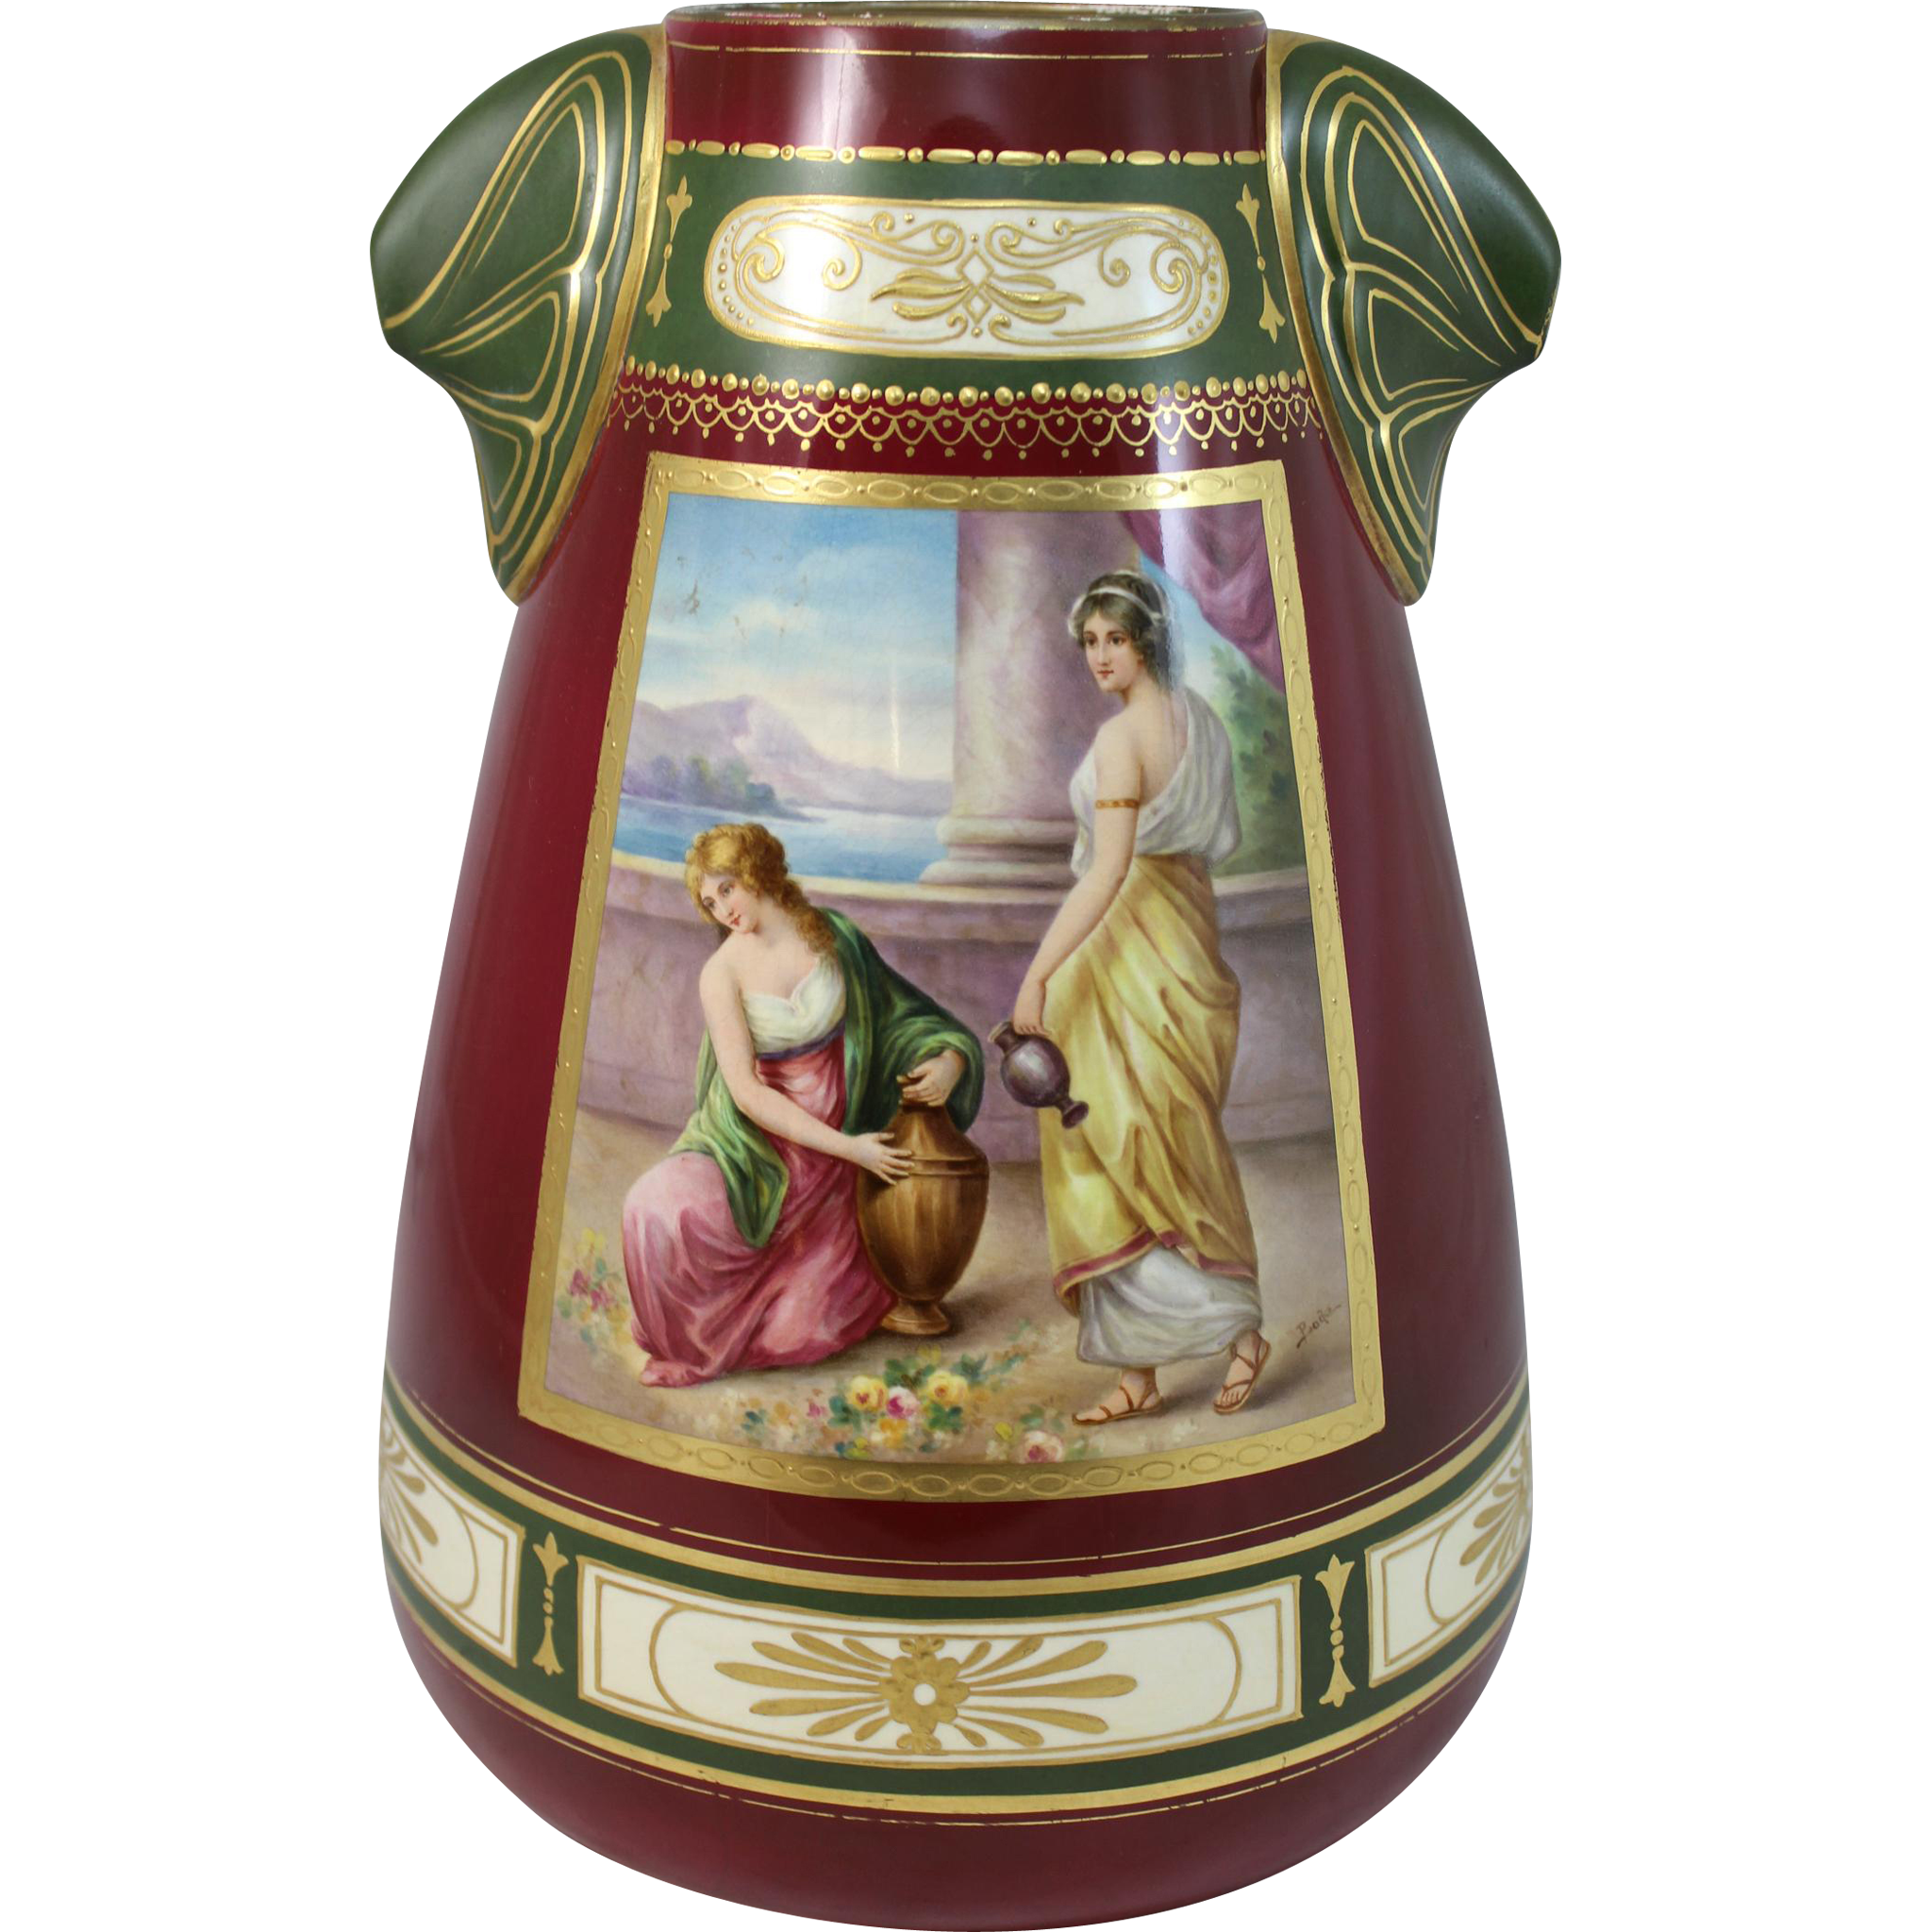 Royal Bonn Porcelain Vase with Hand Painted Classical Scene Signed Bode,  circa 1900